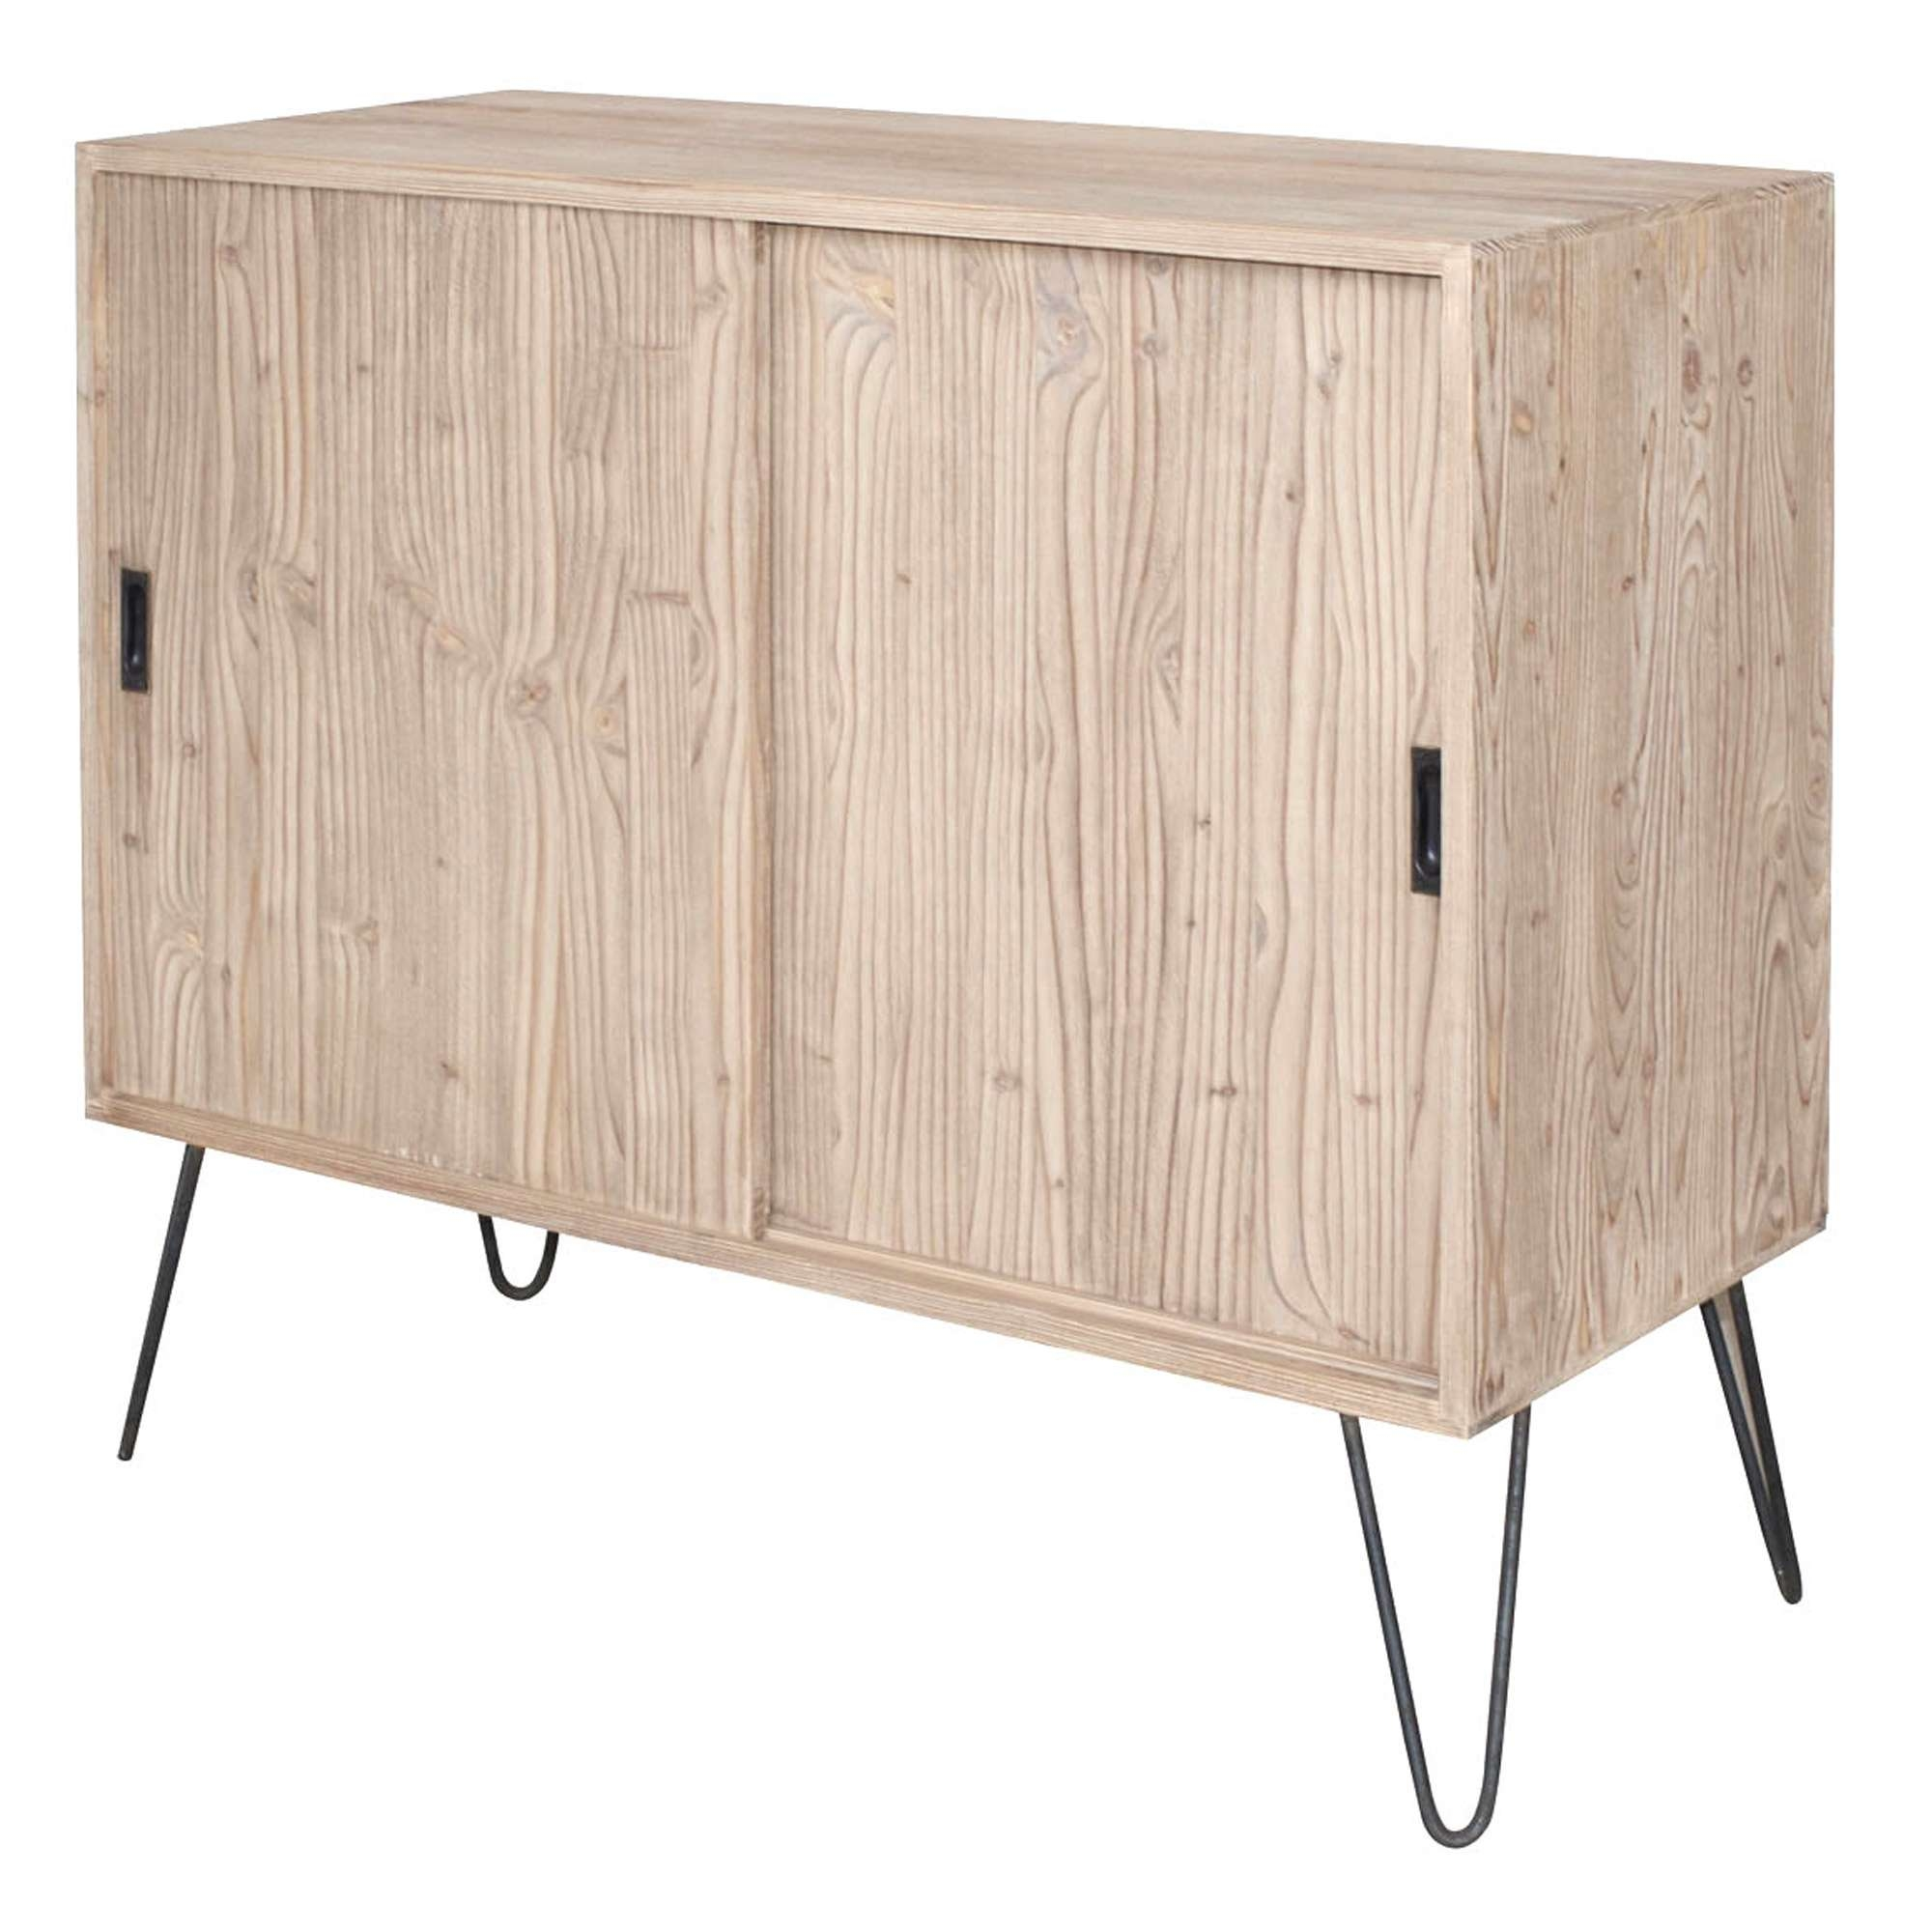 French Sliding Door Sideboard With Metal Legs Within Metal Sideboards (View 5 of 20)